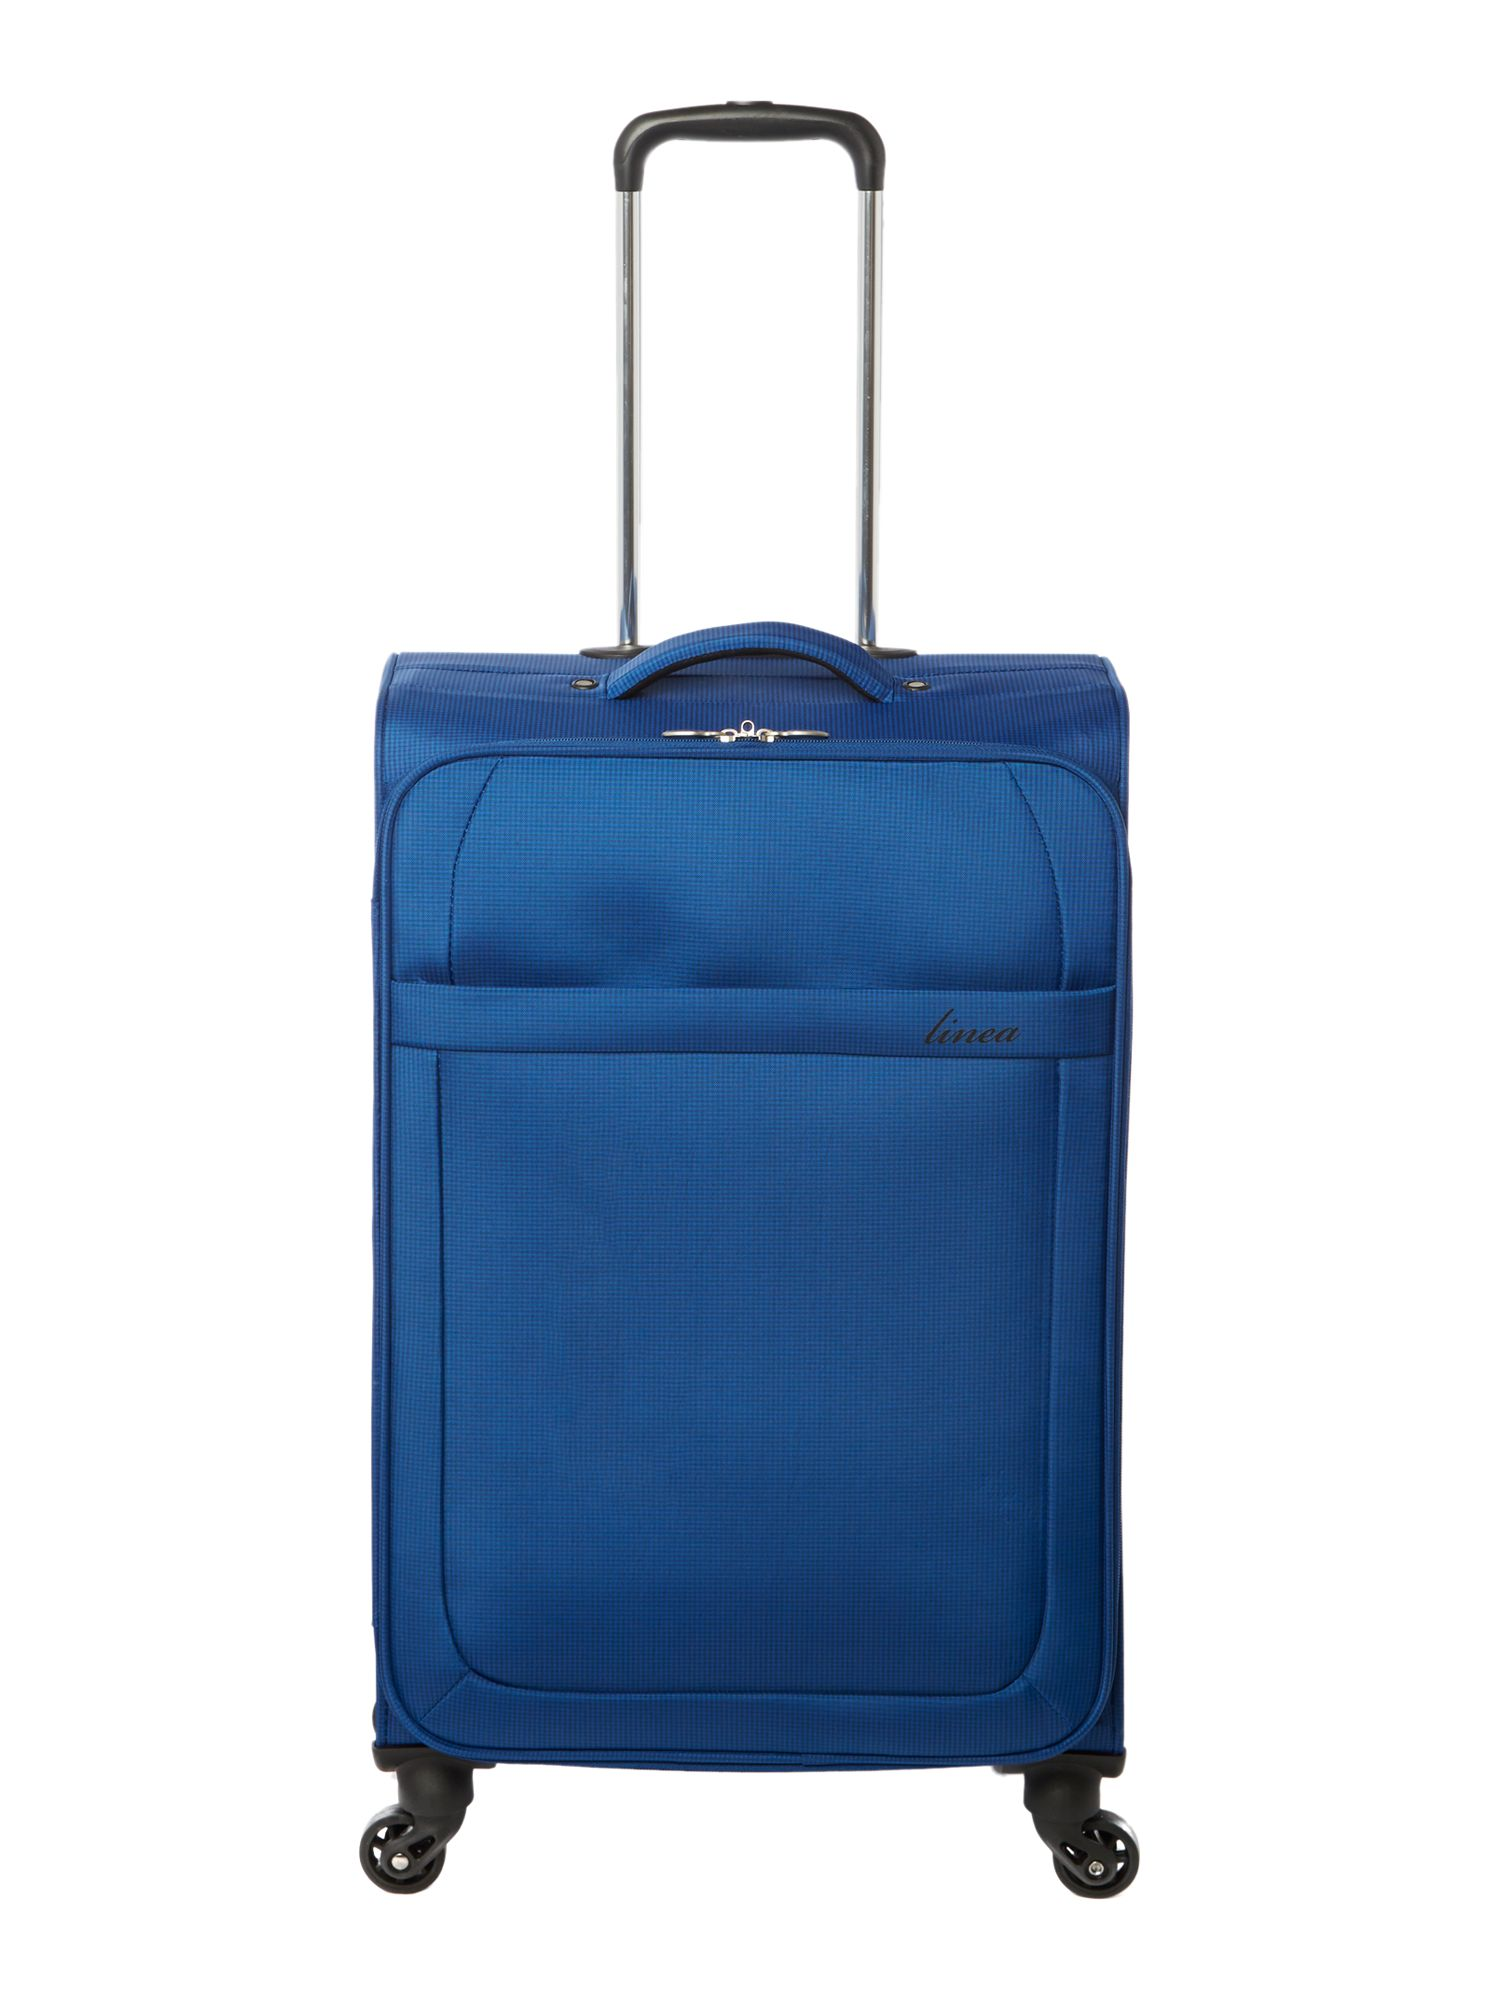 Linea Airlite black 4 wheel soft medium suitcase, Blue